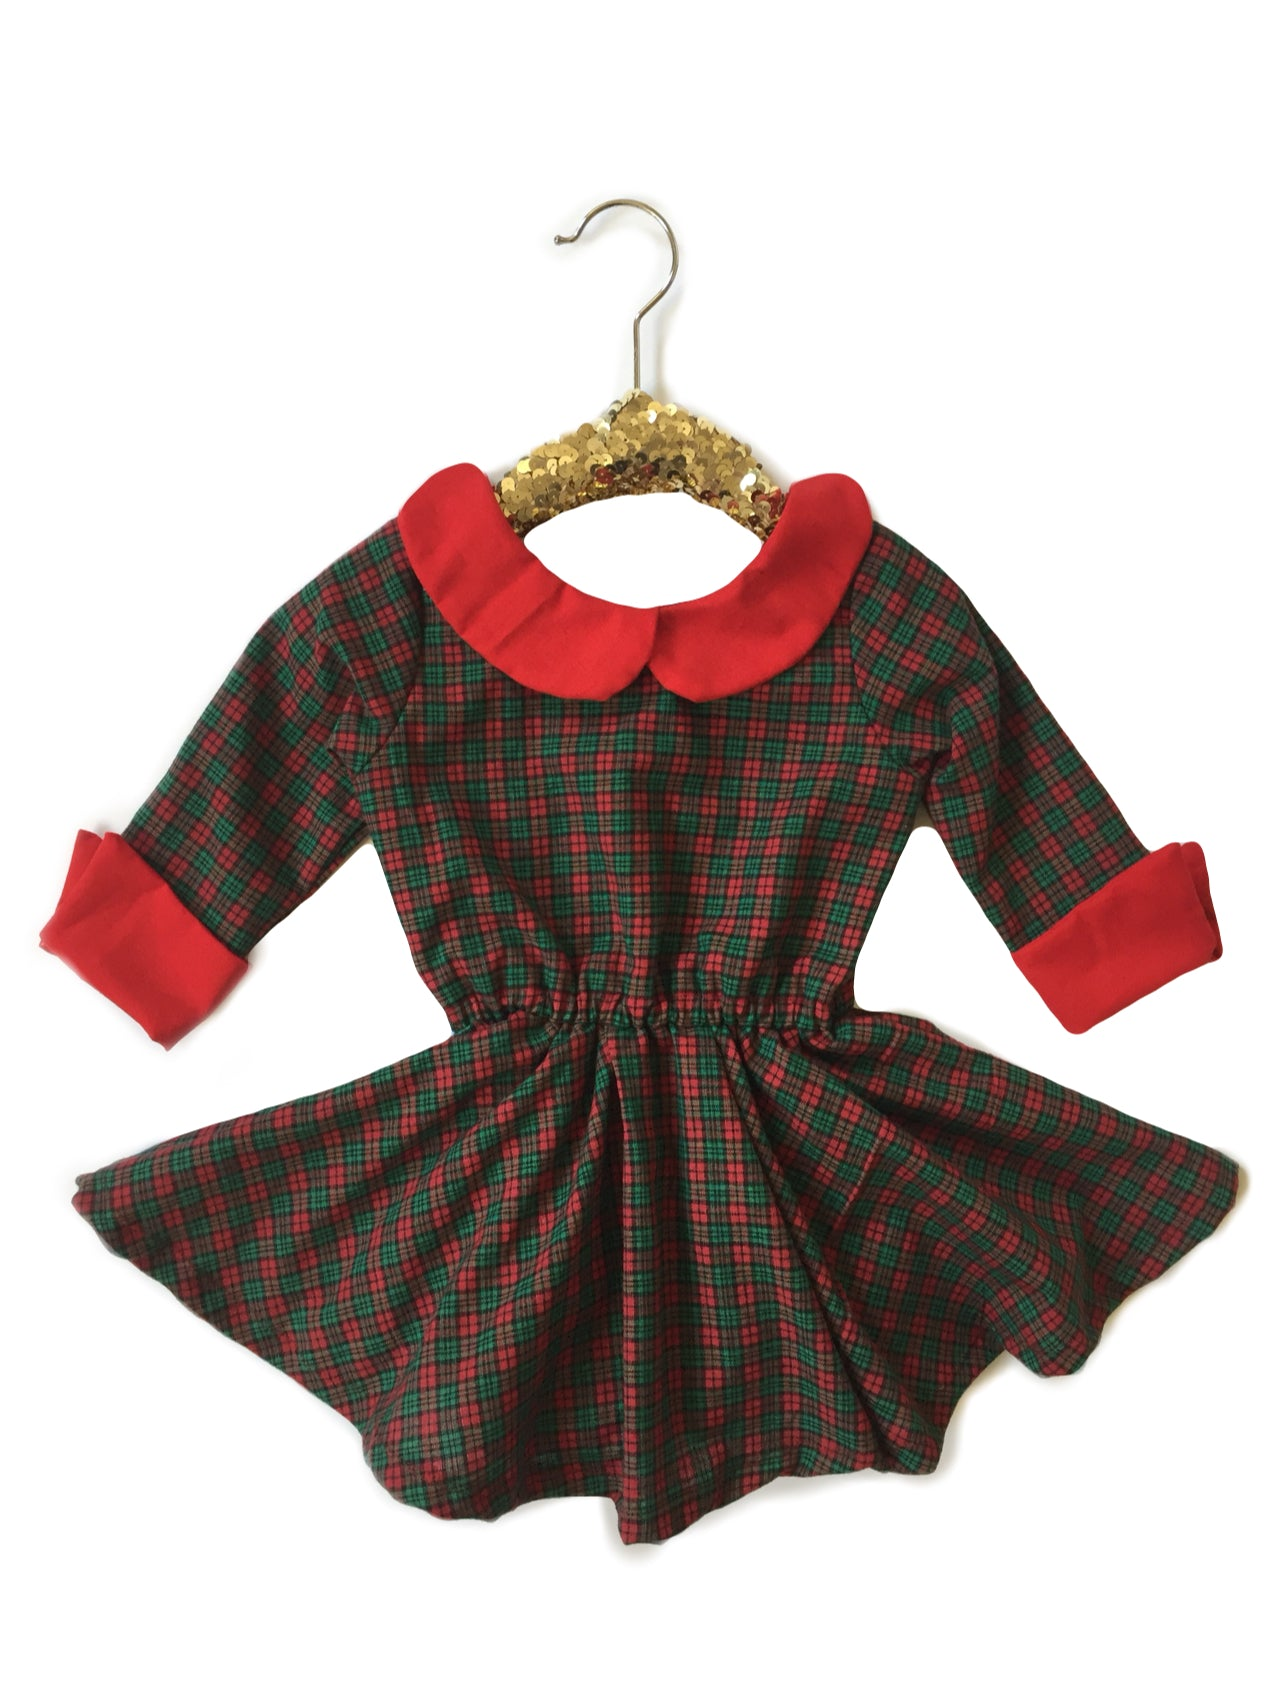 CHRISTMAS PLAID Vintage 60s Shortie Dress